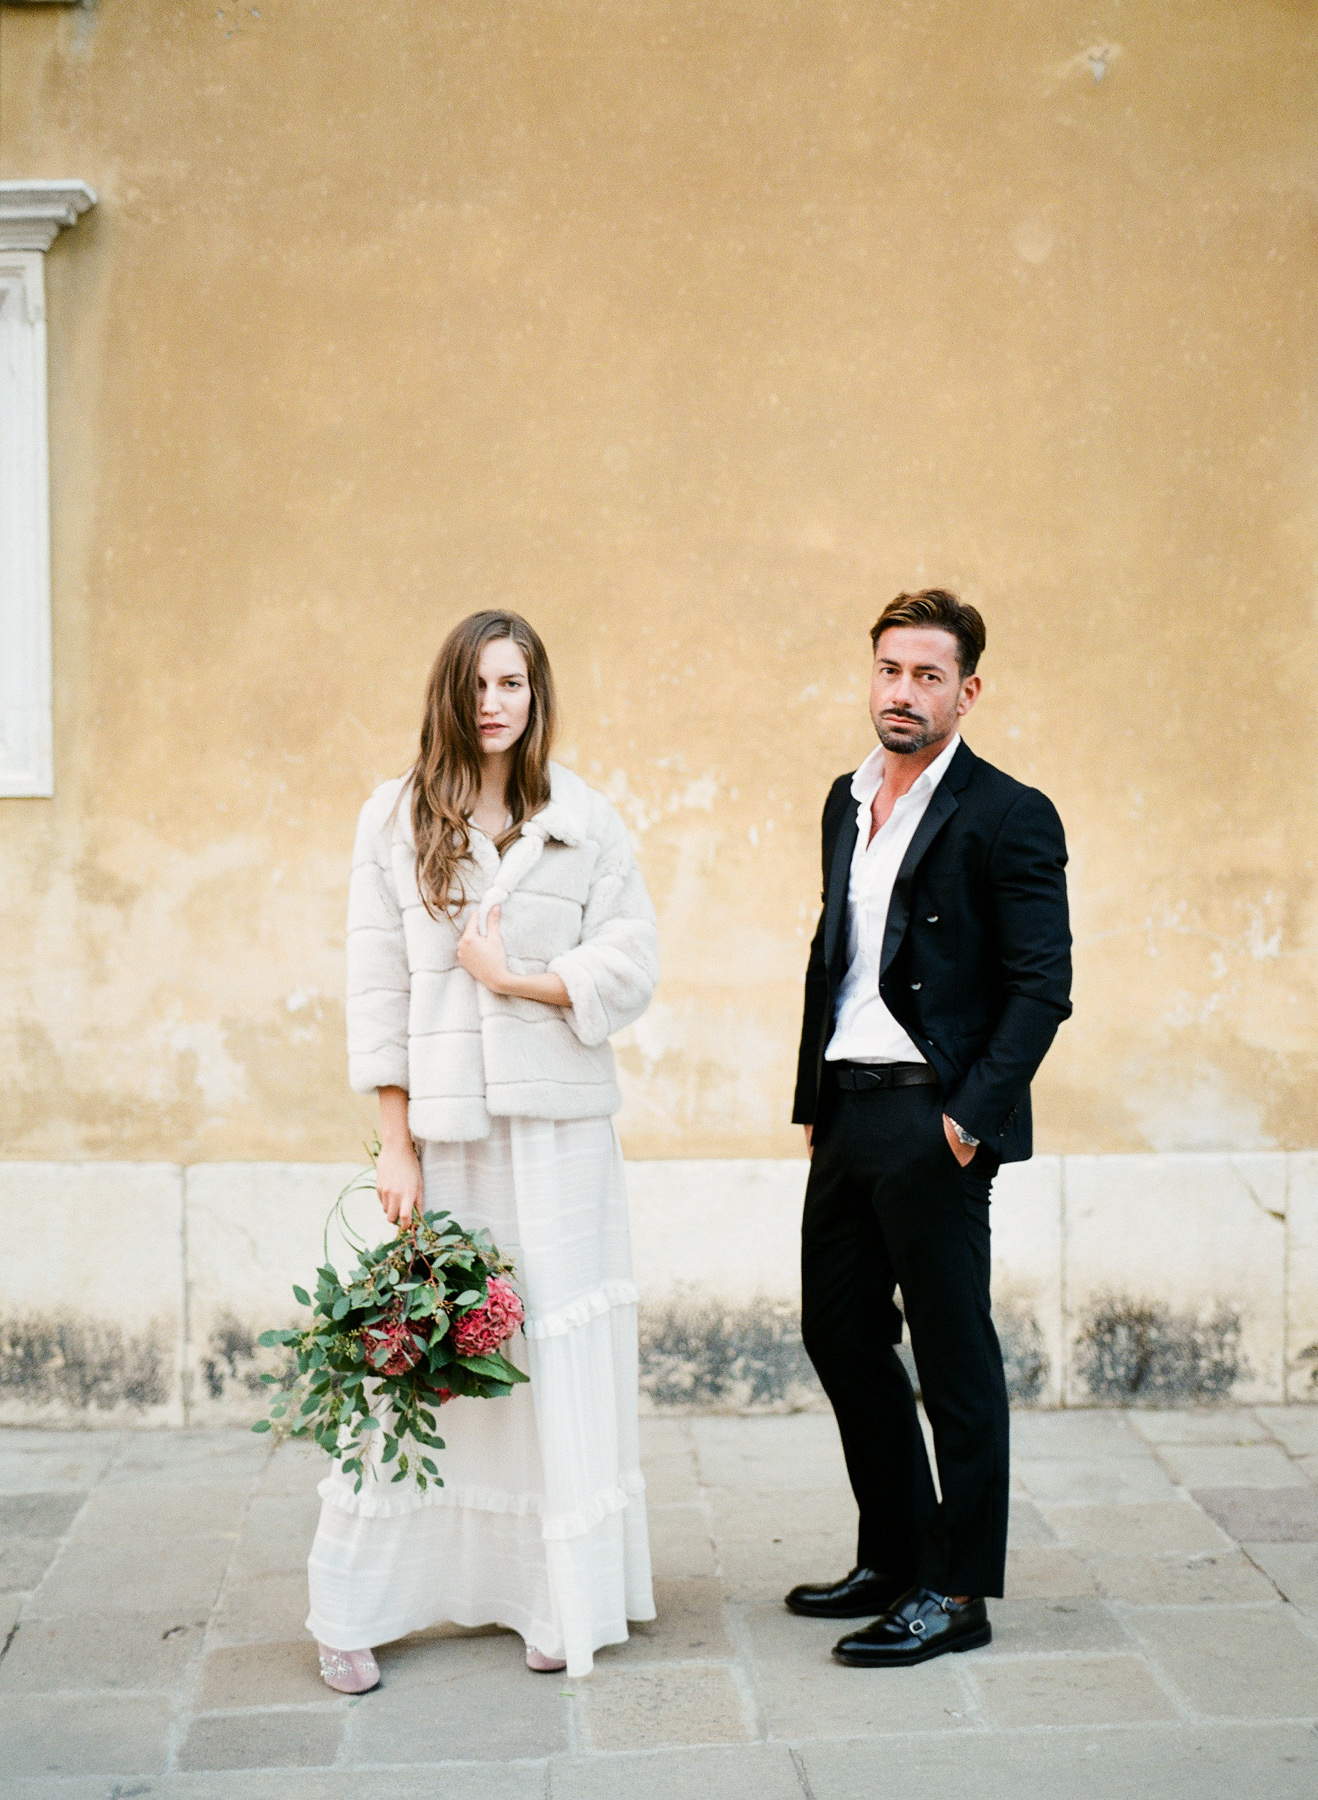 53 Venice Italy Photographer Wedding.jpg